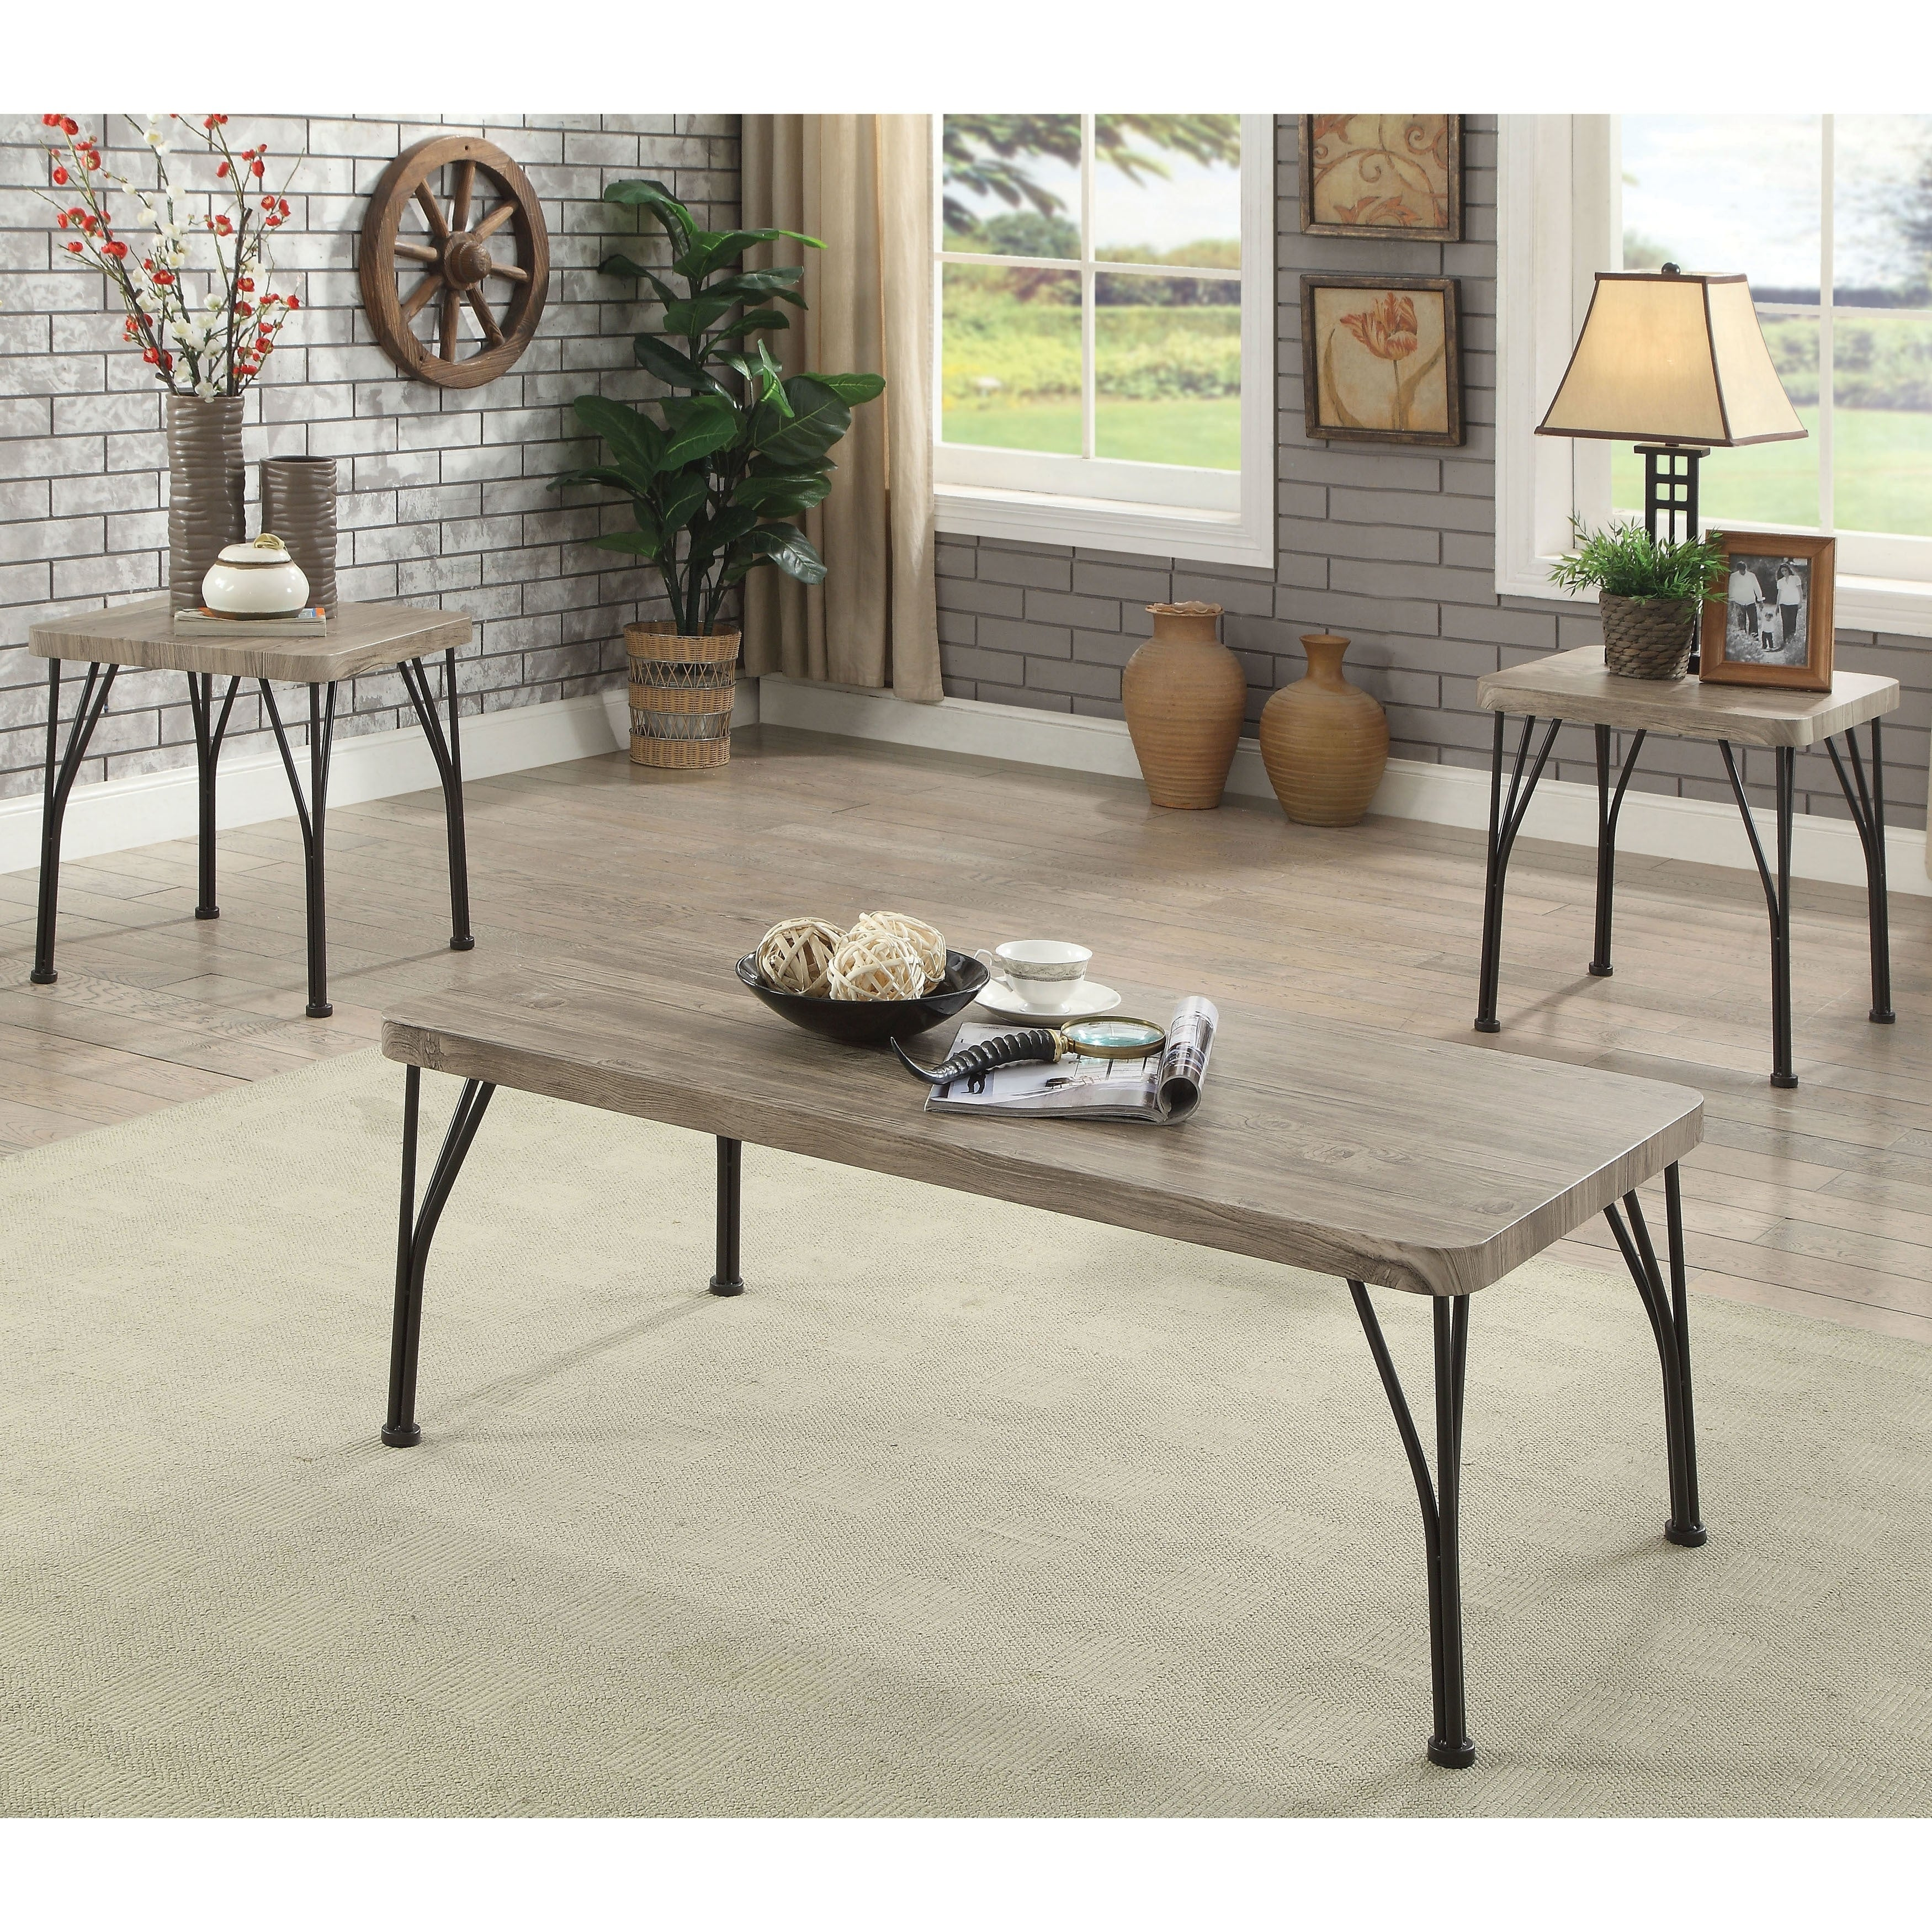 Industrial furniture table Modern Details About Furniture Of America Hathway Industrial Metal 3piece Accent Table Set Pinterest Furniture Of America Hathway Industrial Metal 3piece Accent Table